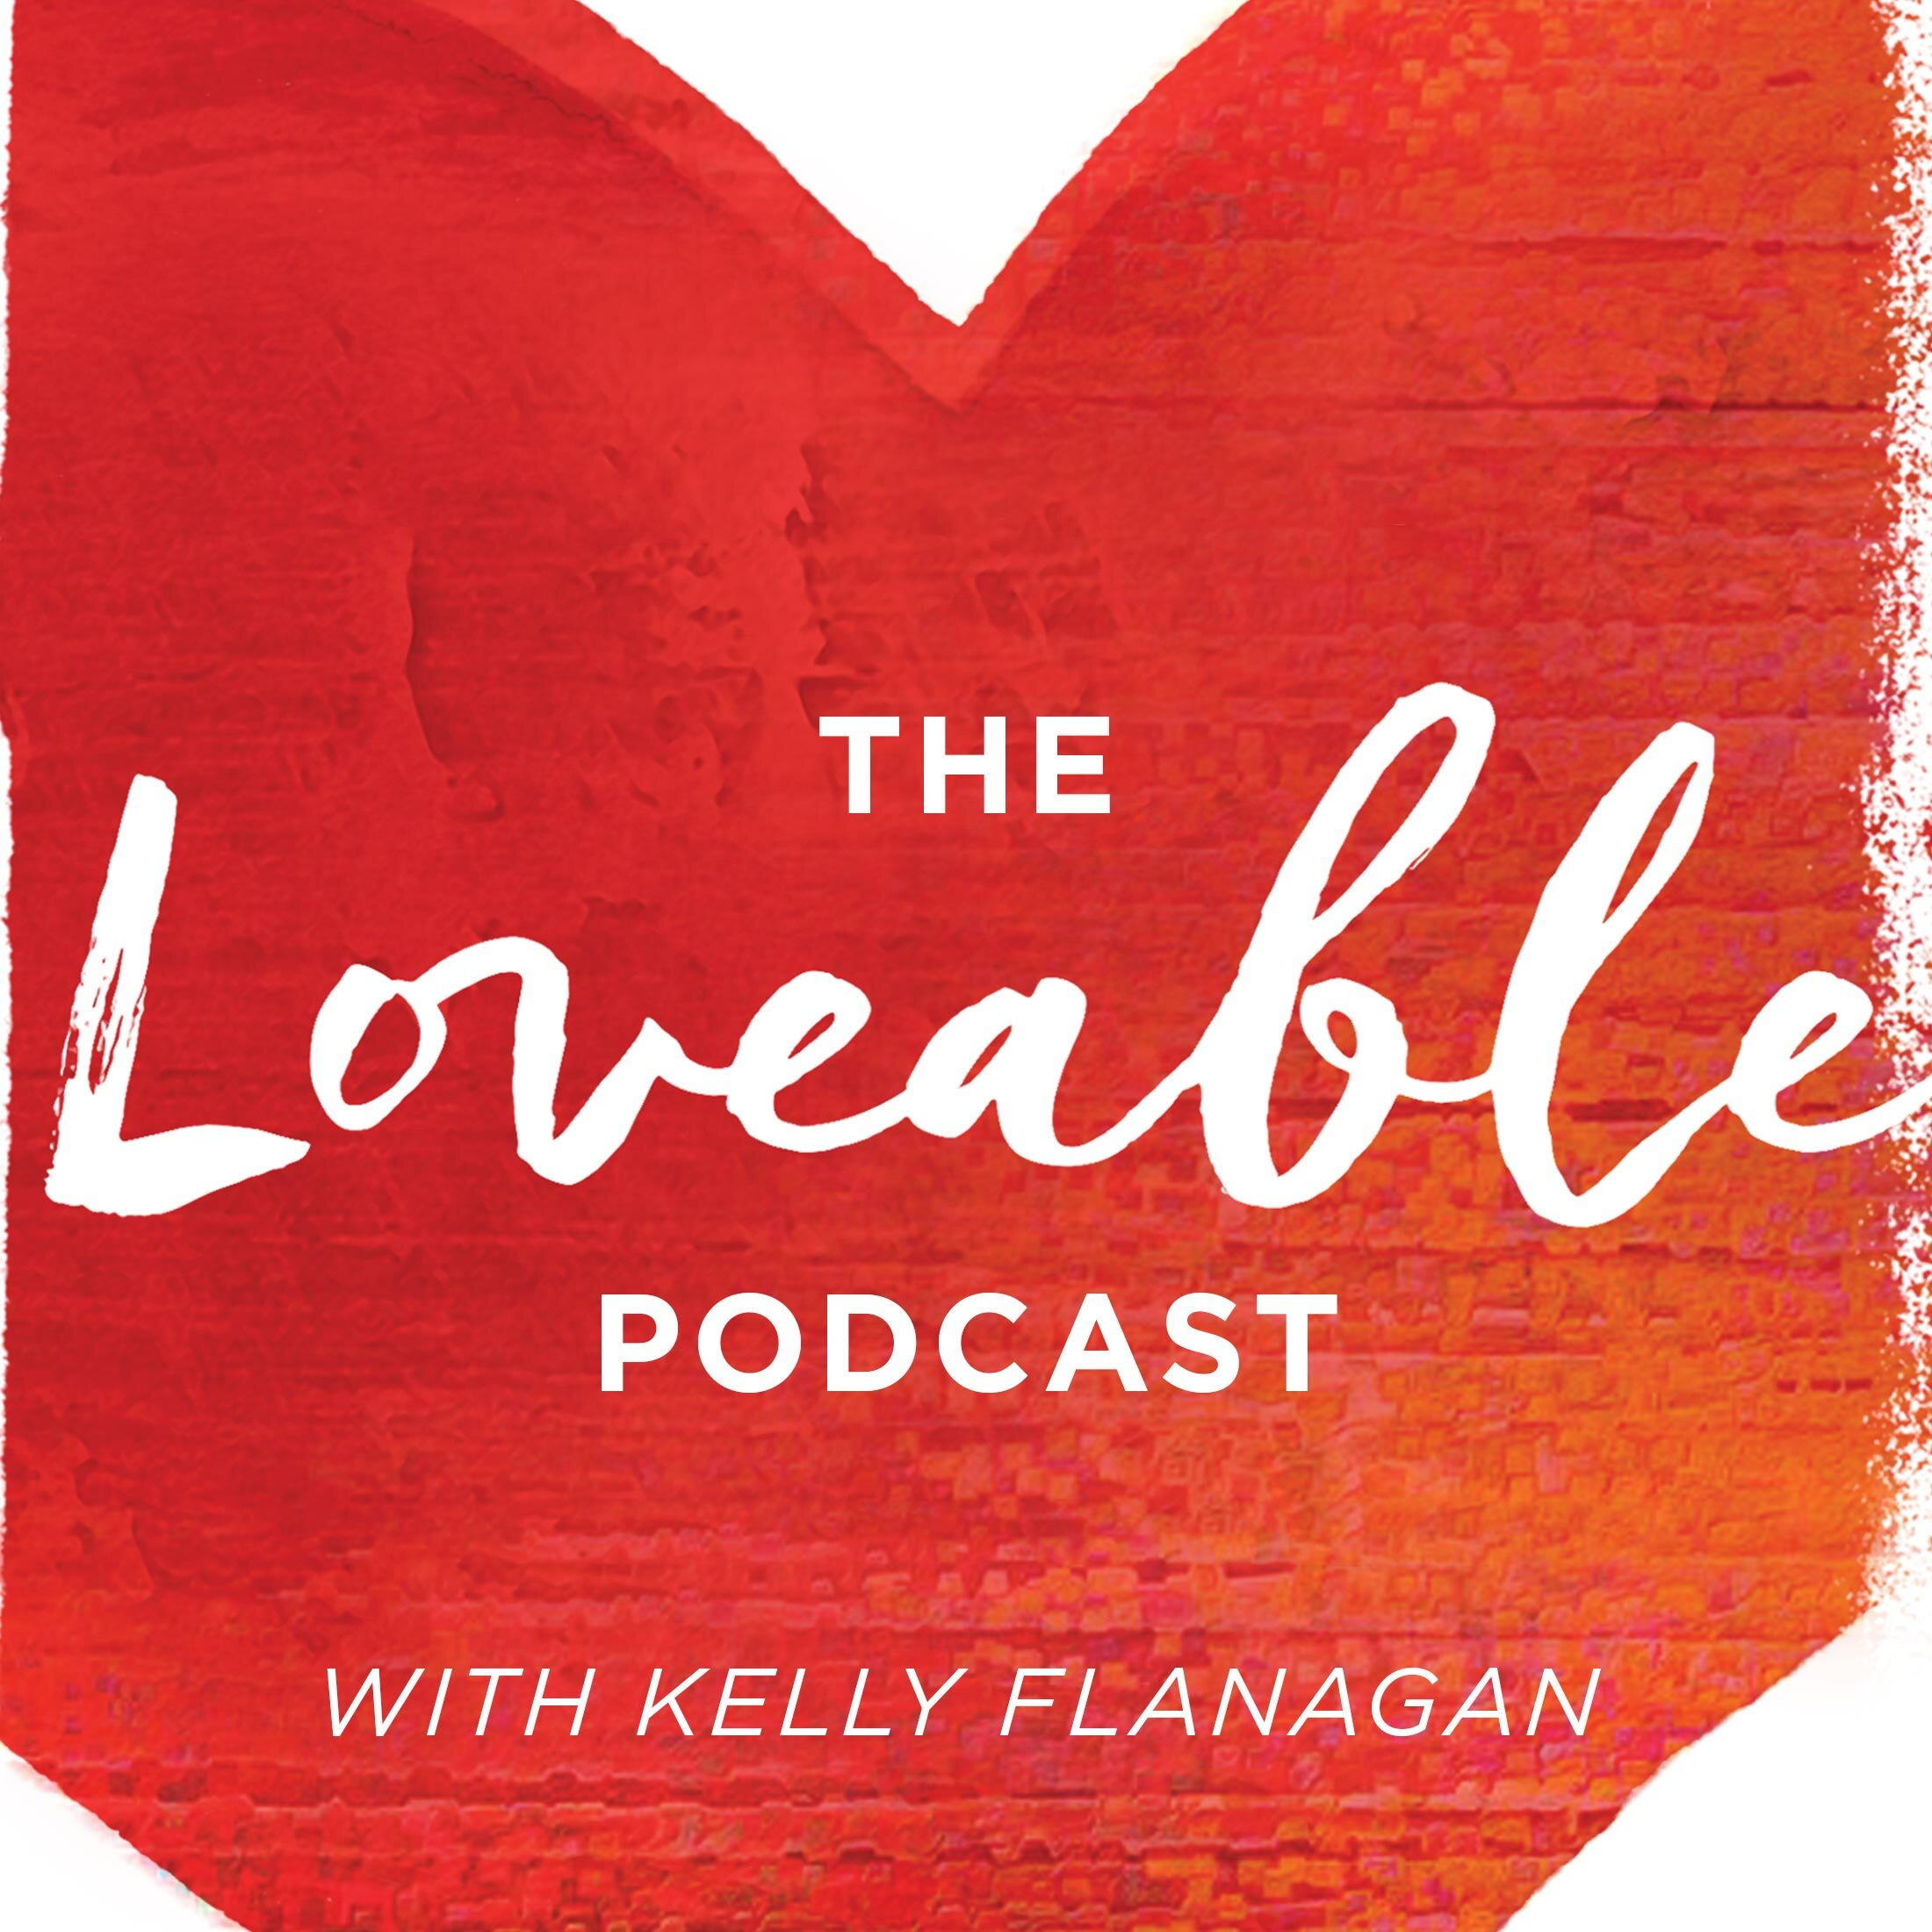 The Loveable Podcast - In this podcast, Kelly delivers the tools for living fully into who you are and why you are here. Each weekly episode includes an inspirational reading, a presentation of practices for the week, and a conversation with Kelly's readers about both.